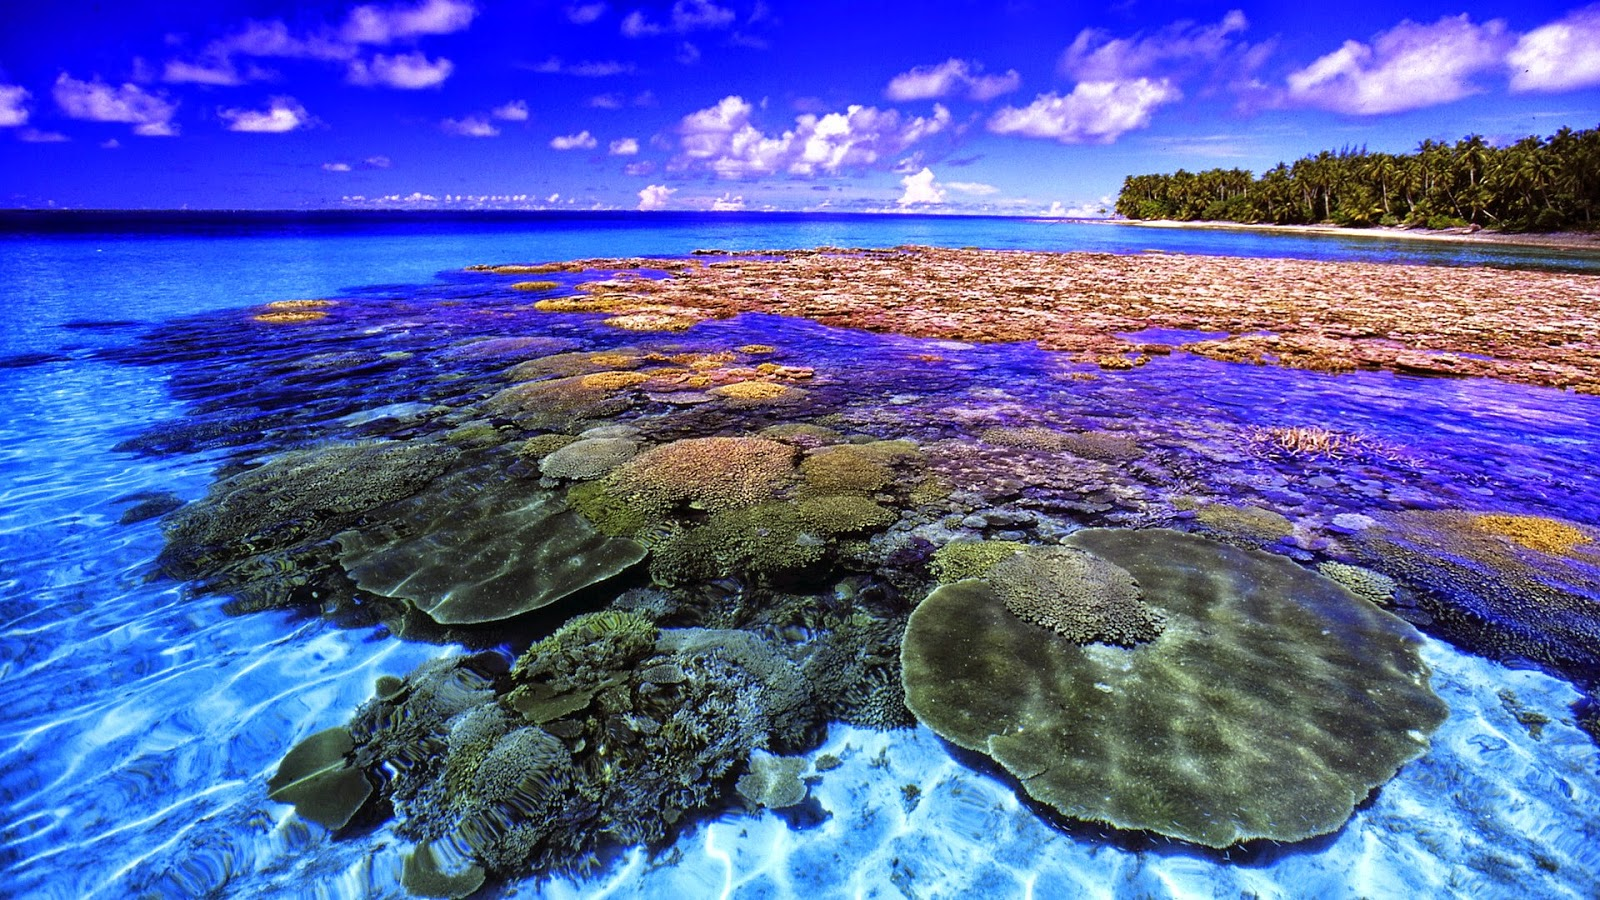 Coral Reef Wallpaper Hd Coral Reef Hd Wallpapers Earth Blog